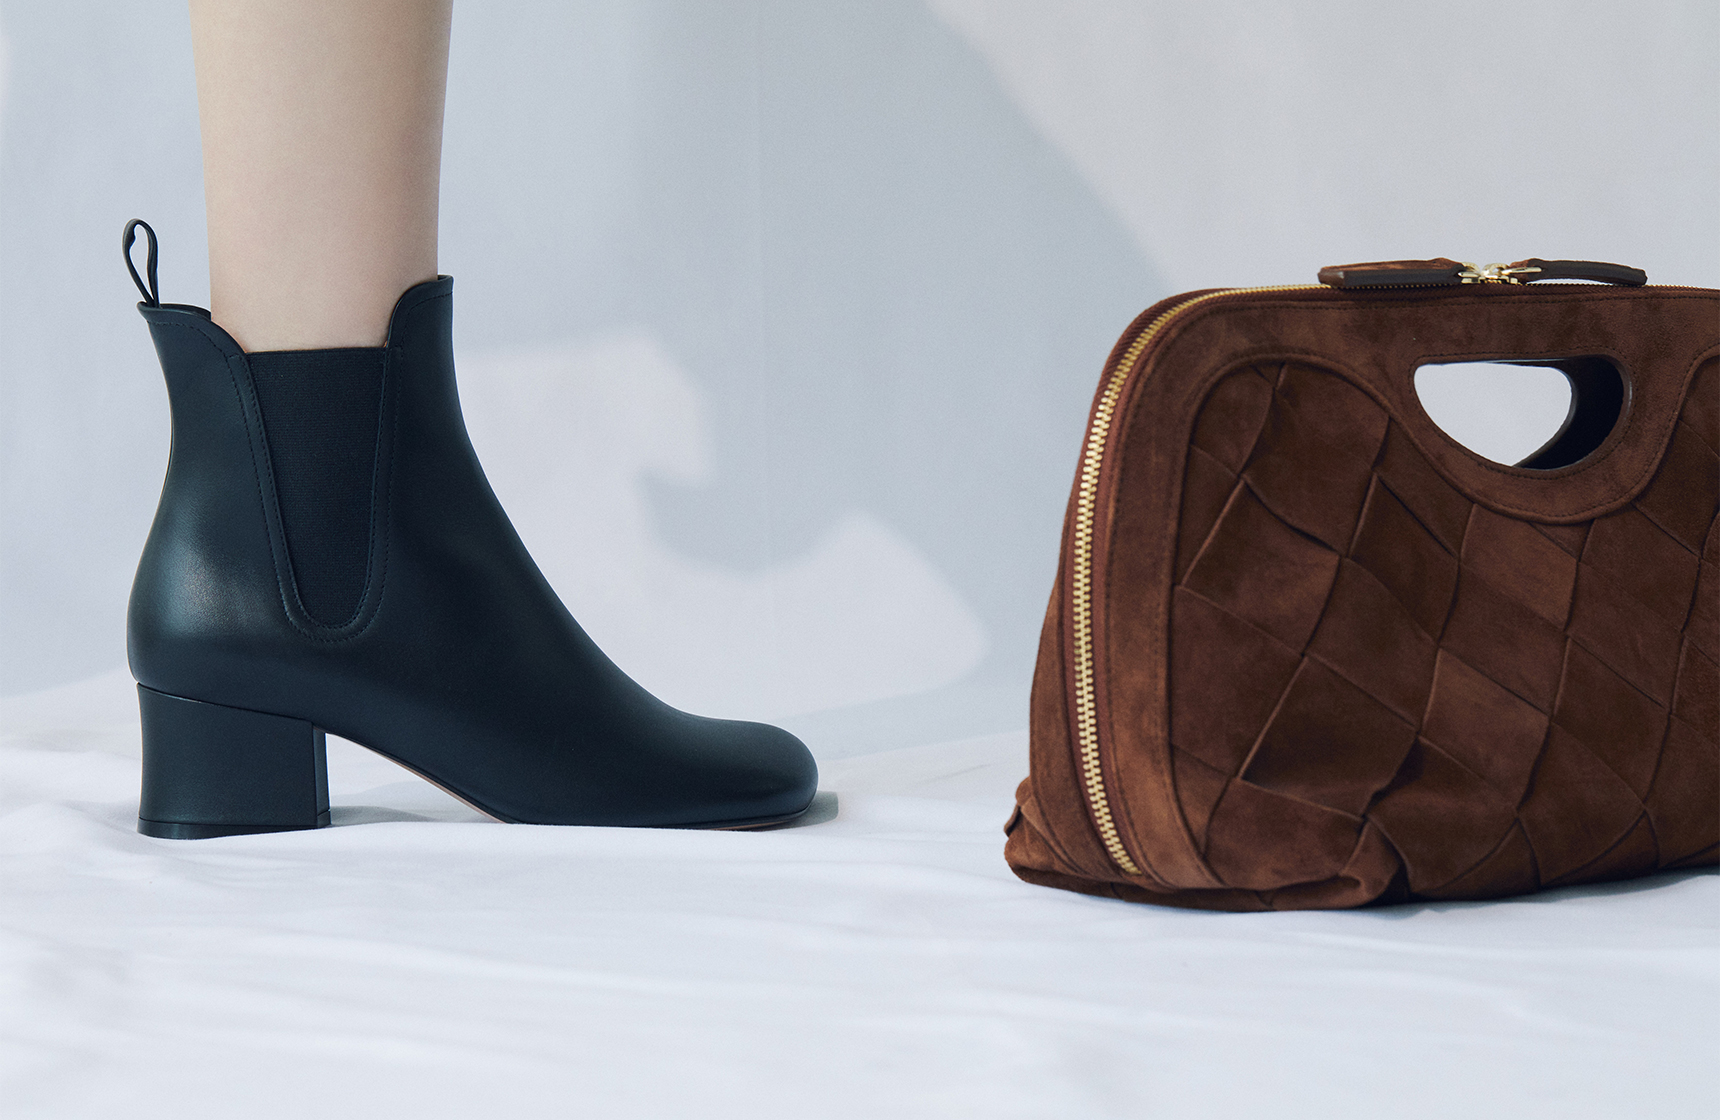 Sophisticated curved boots